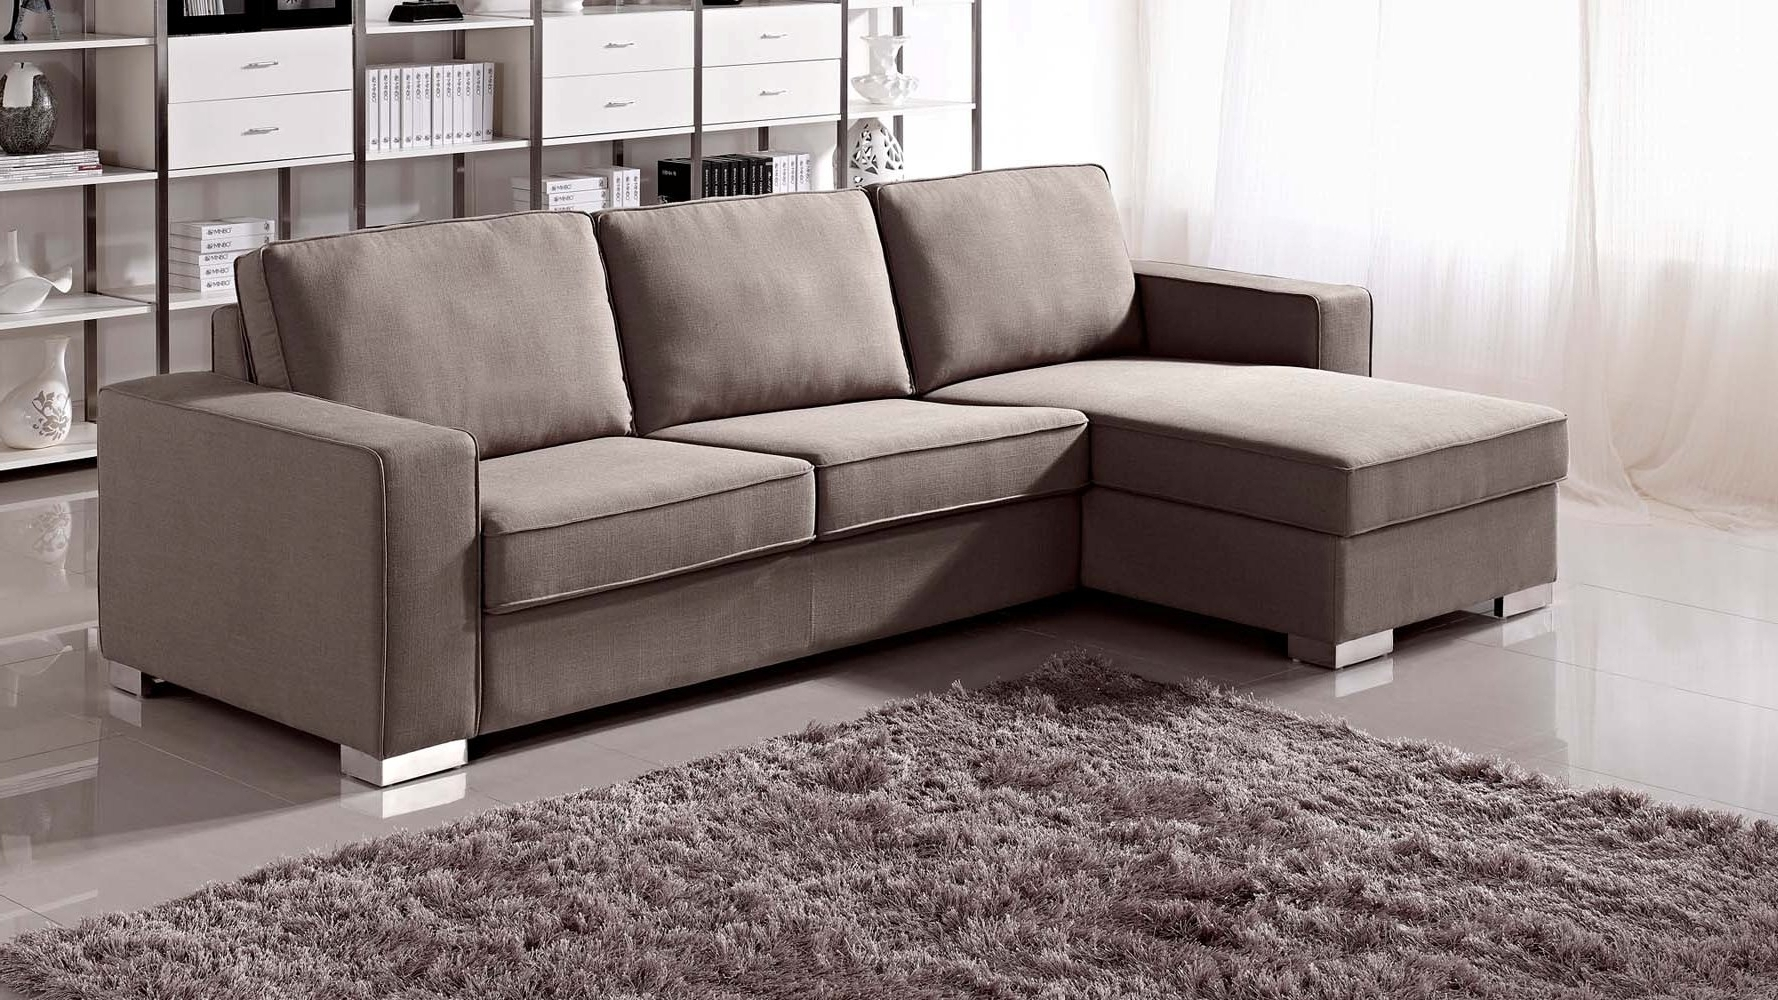 Current Modern Simple Sectional Sofa Sleeper With Storage And Purple Intended For Sleeper Sofas With Chaise (View 15 of 15)